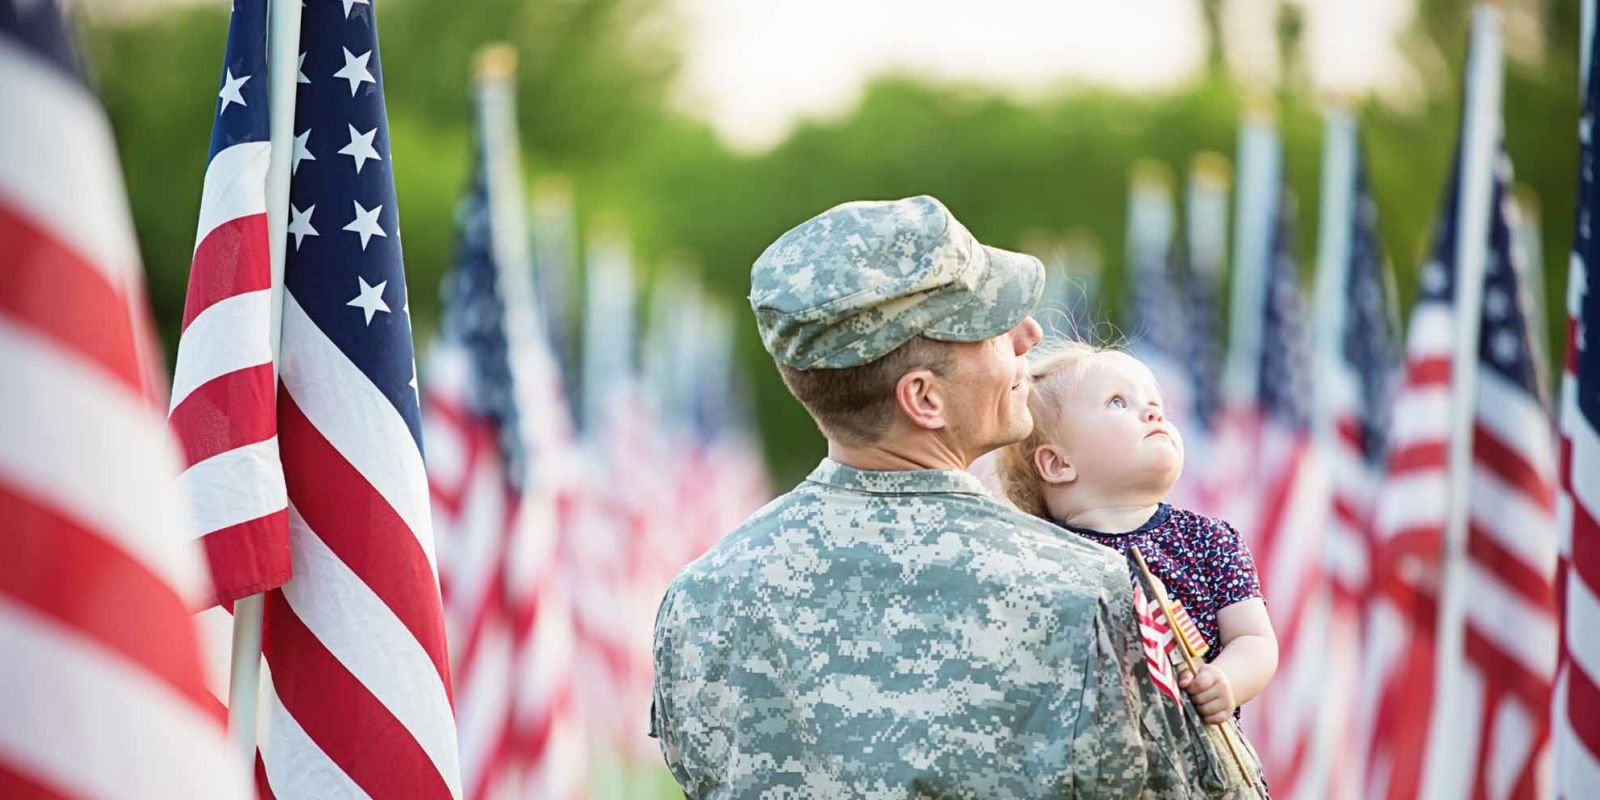 10 Best Memorial Day Activities